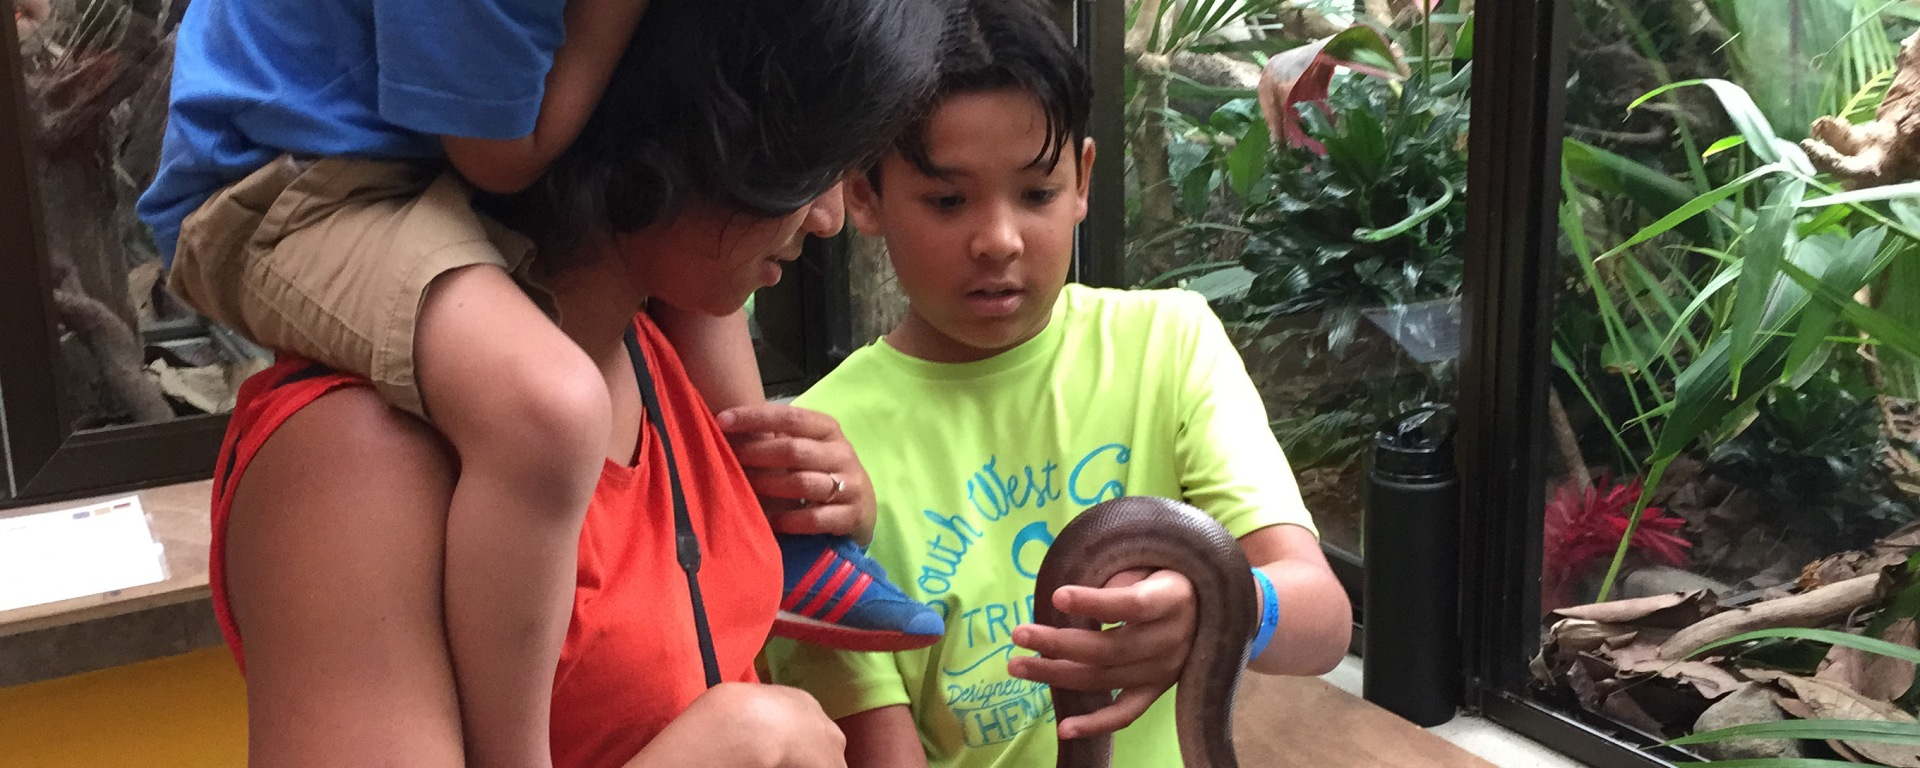 Super cool stuff your kids love to do in Costa Rica - petting a snake